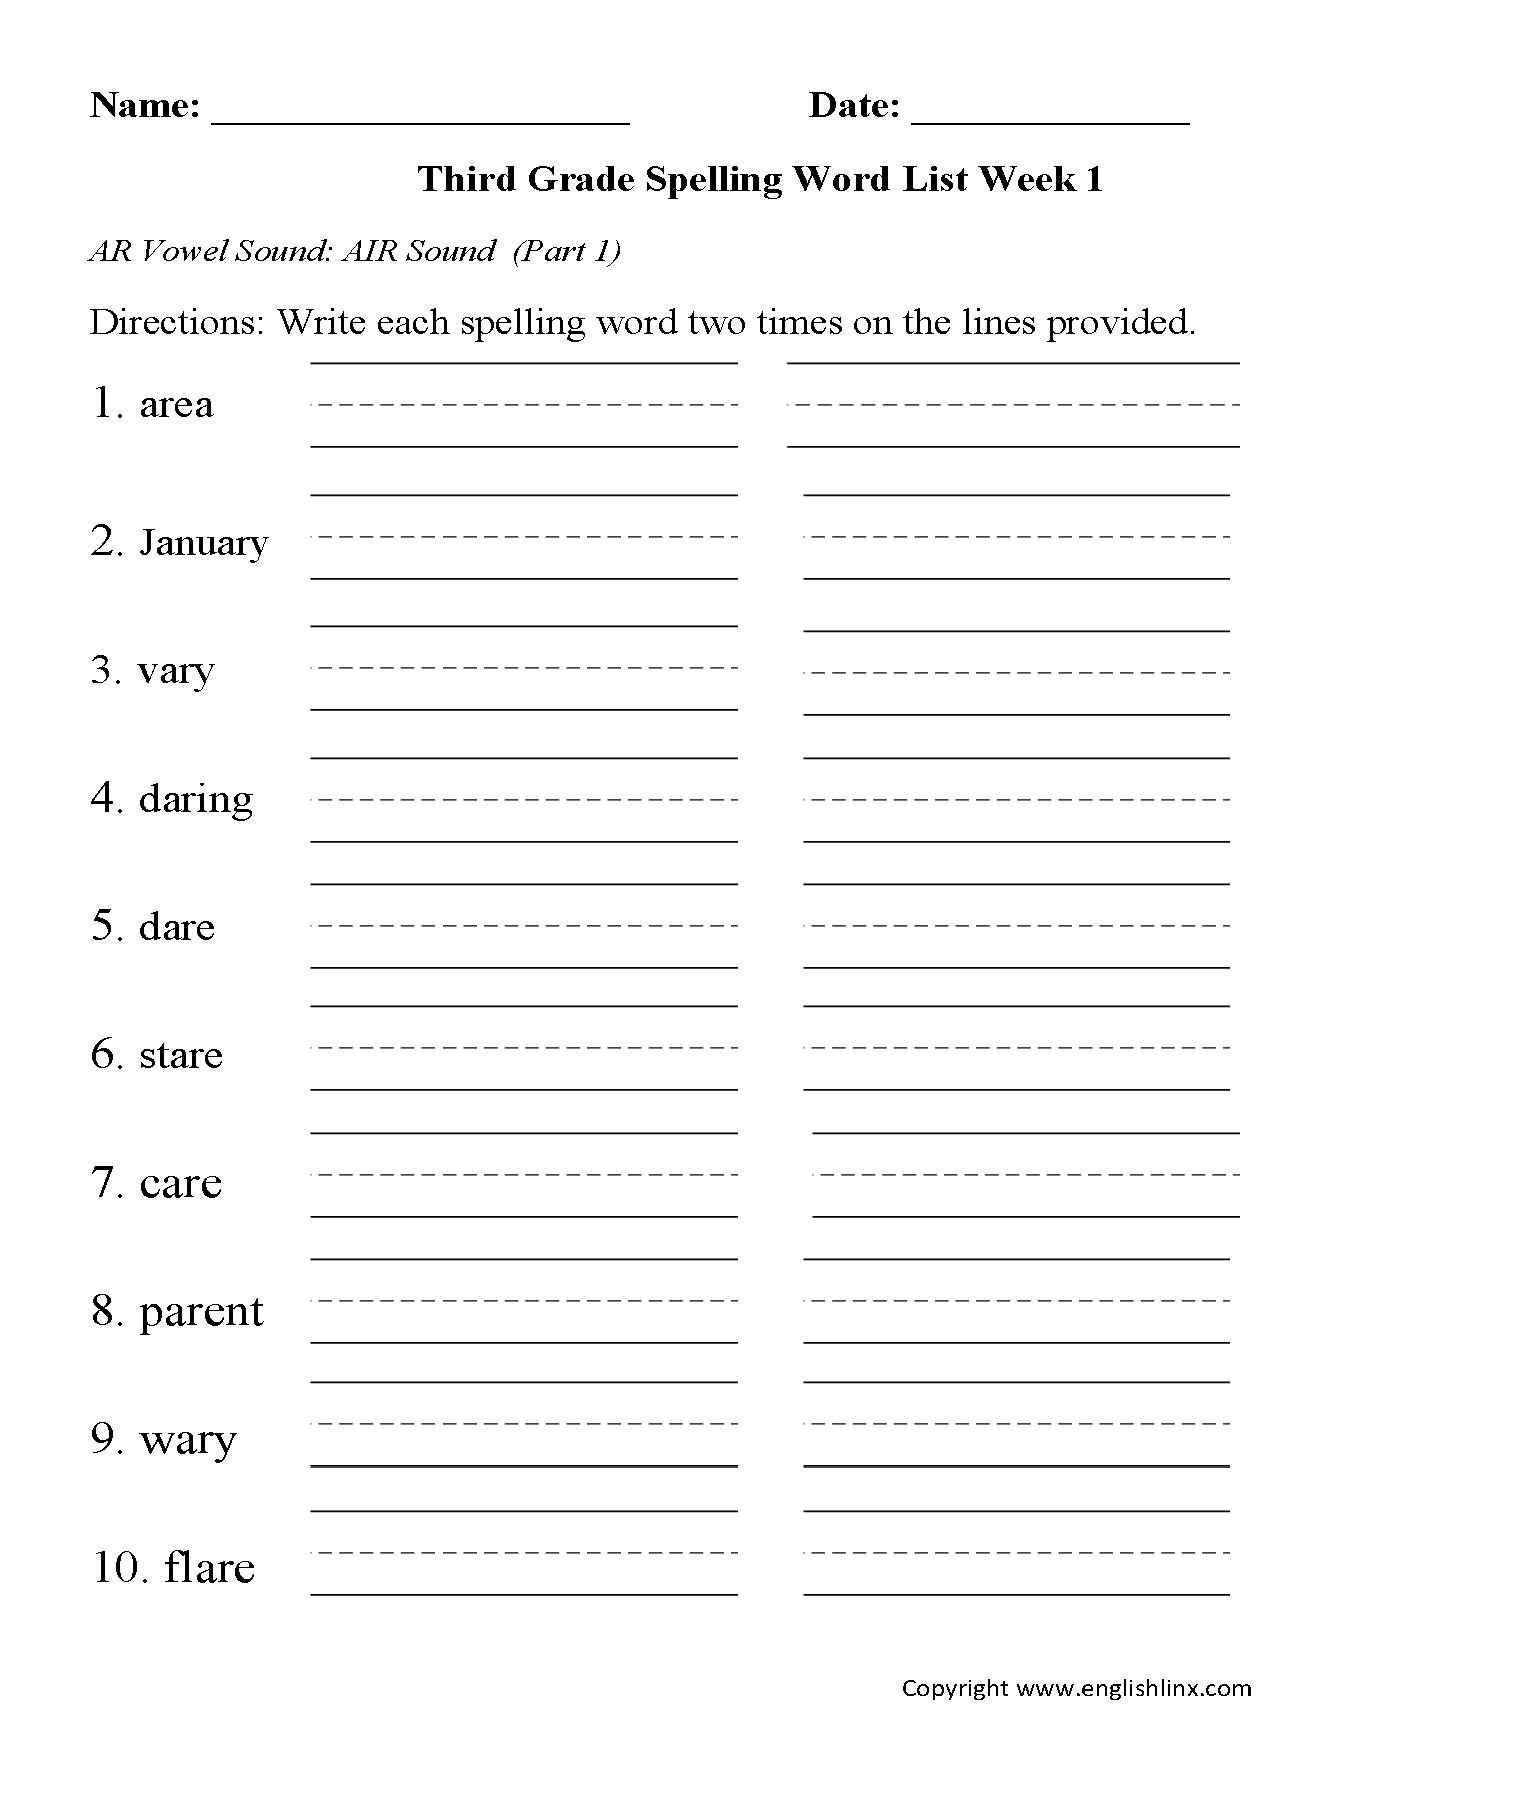 photo relating to Grade 3 Spelling Words Printable named Spelling Worksheets 3rd Quality Spelling Text Worksheets